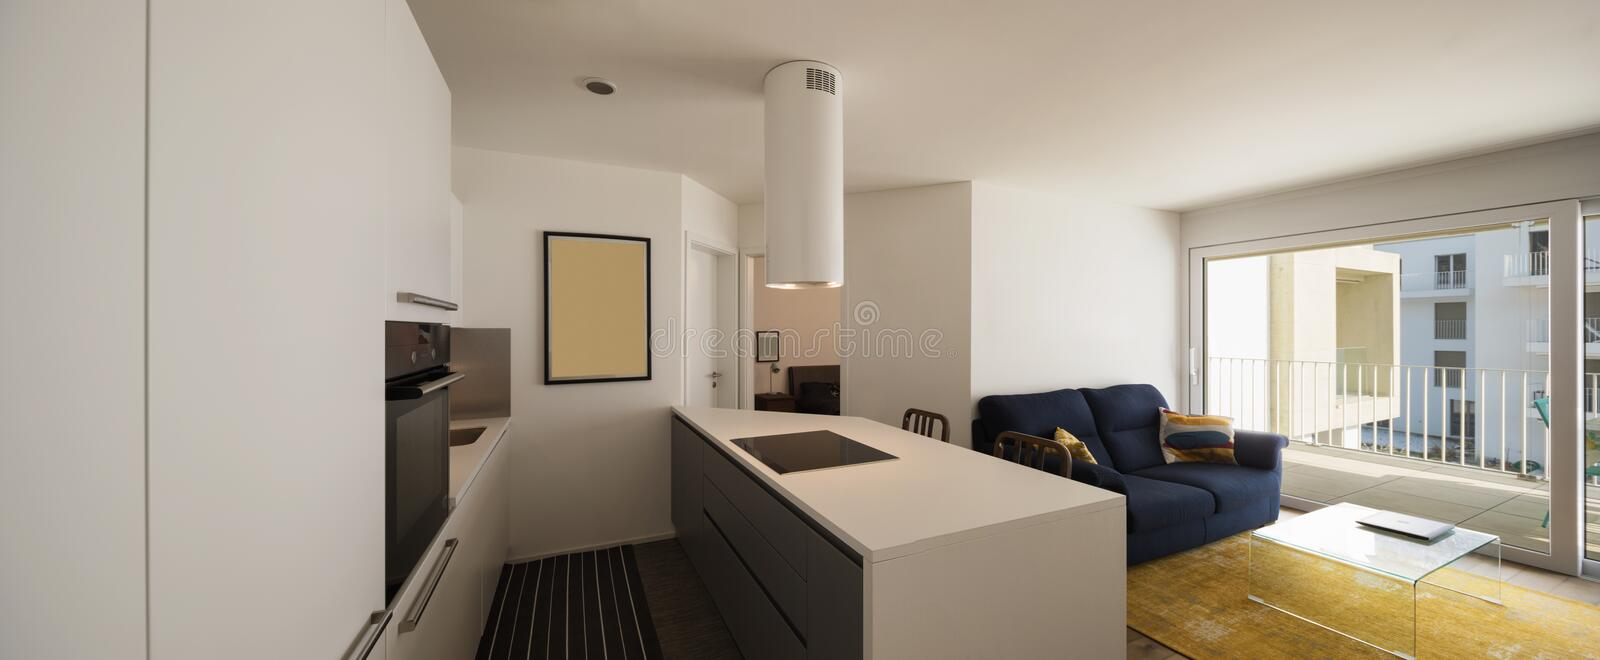 Elegant kitchen and living room in modern apartment stock photography